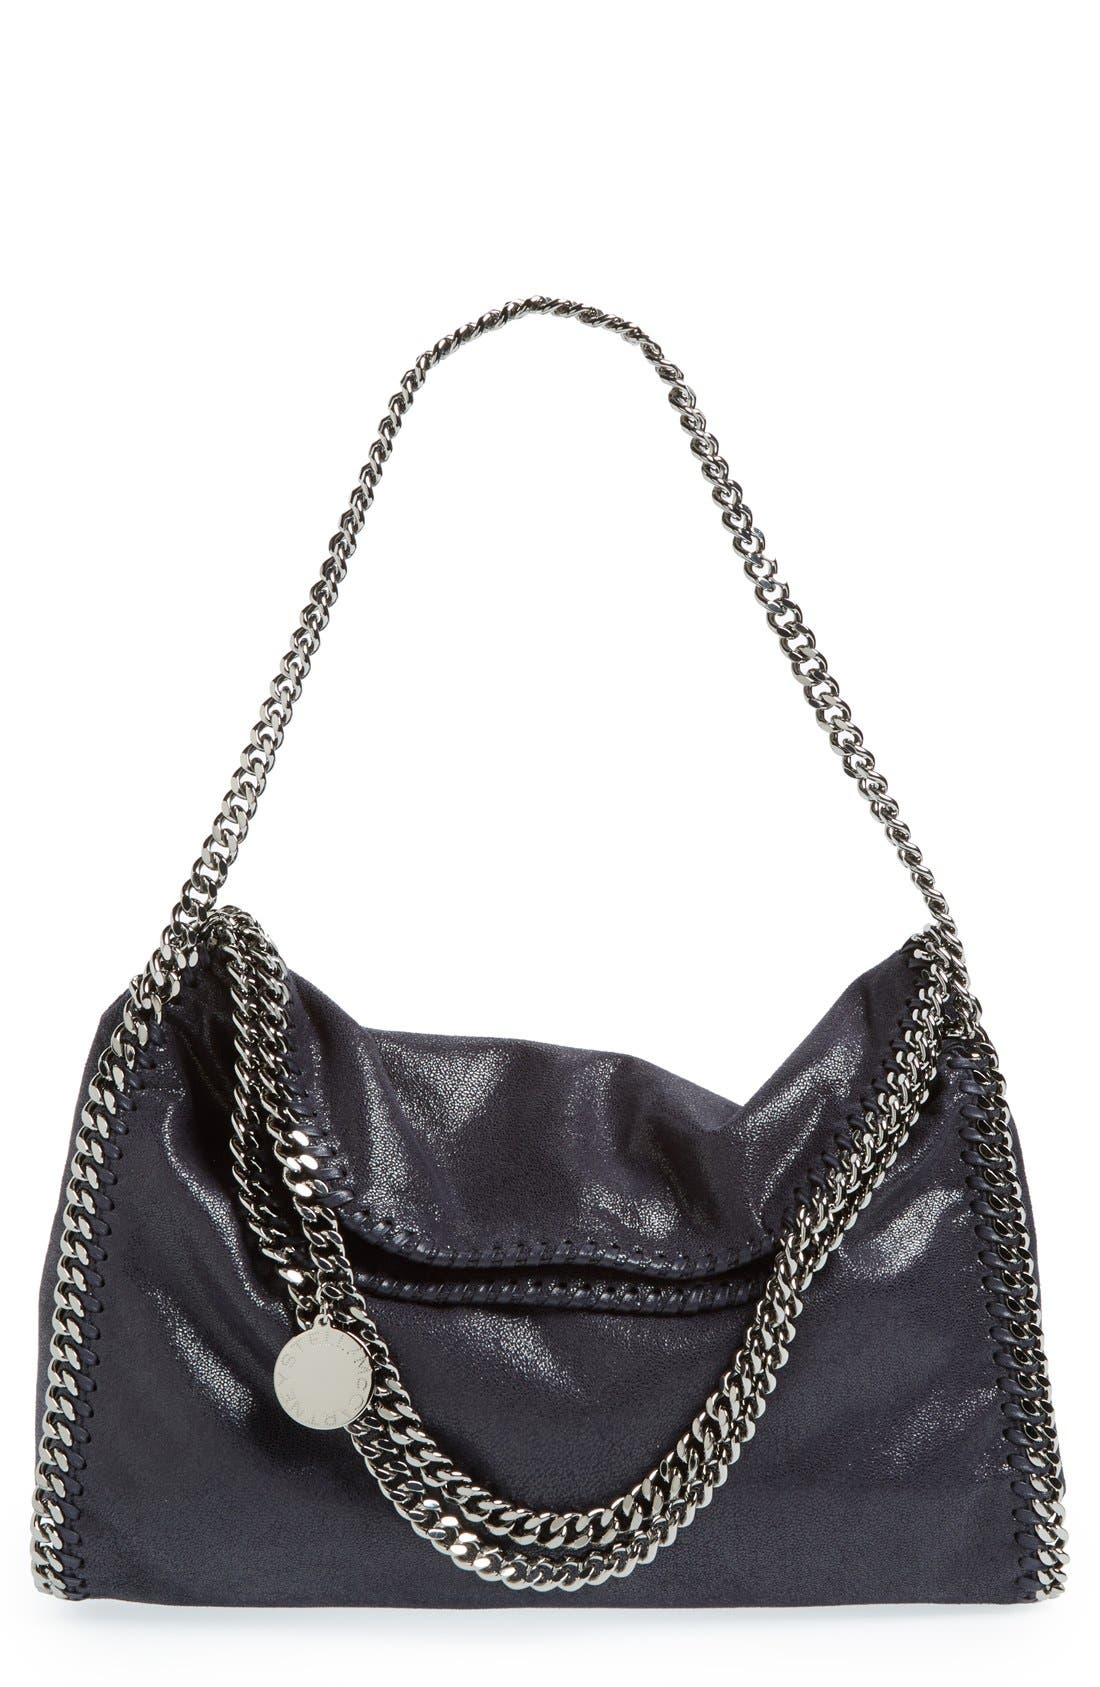 Main Image - Stella McCartney 'Falabella - Shaggy Deer' Faux Leather Foldover Tote